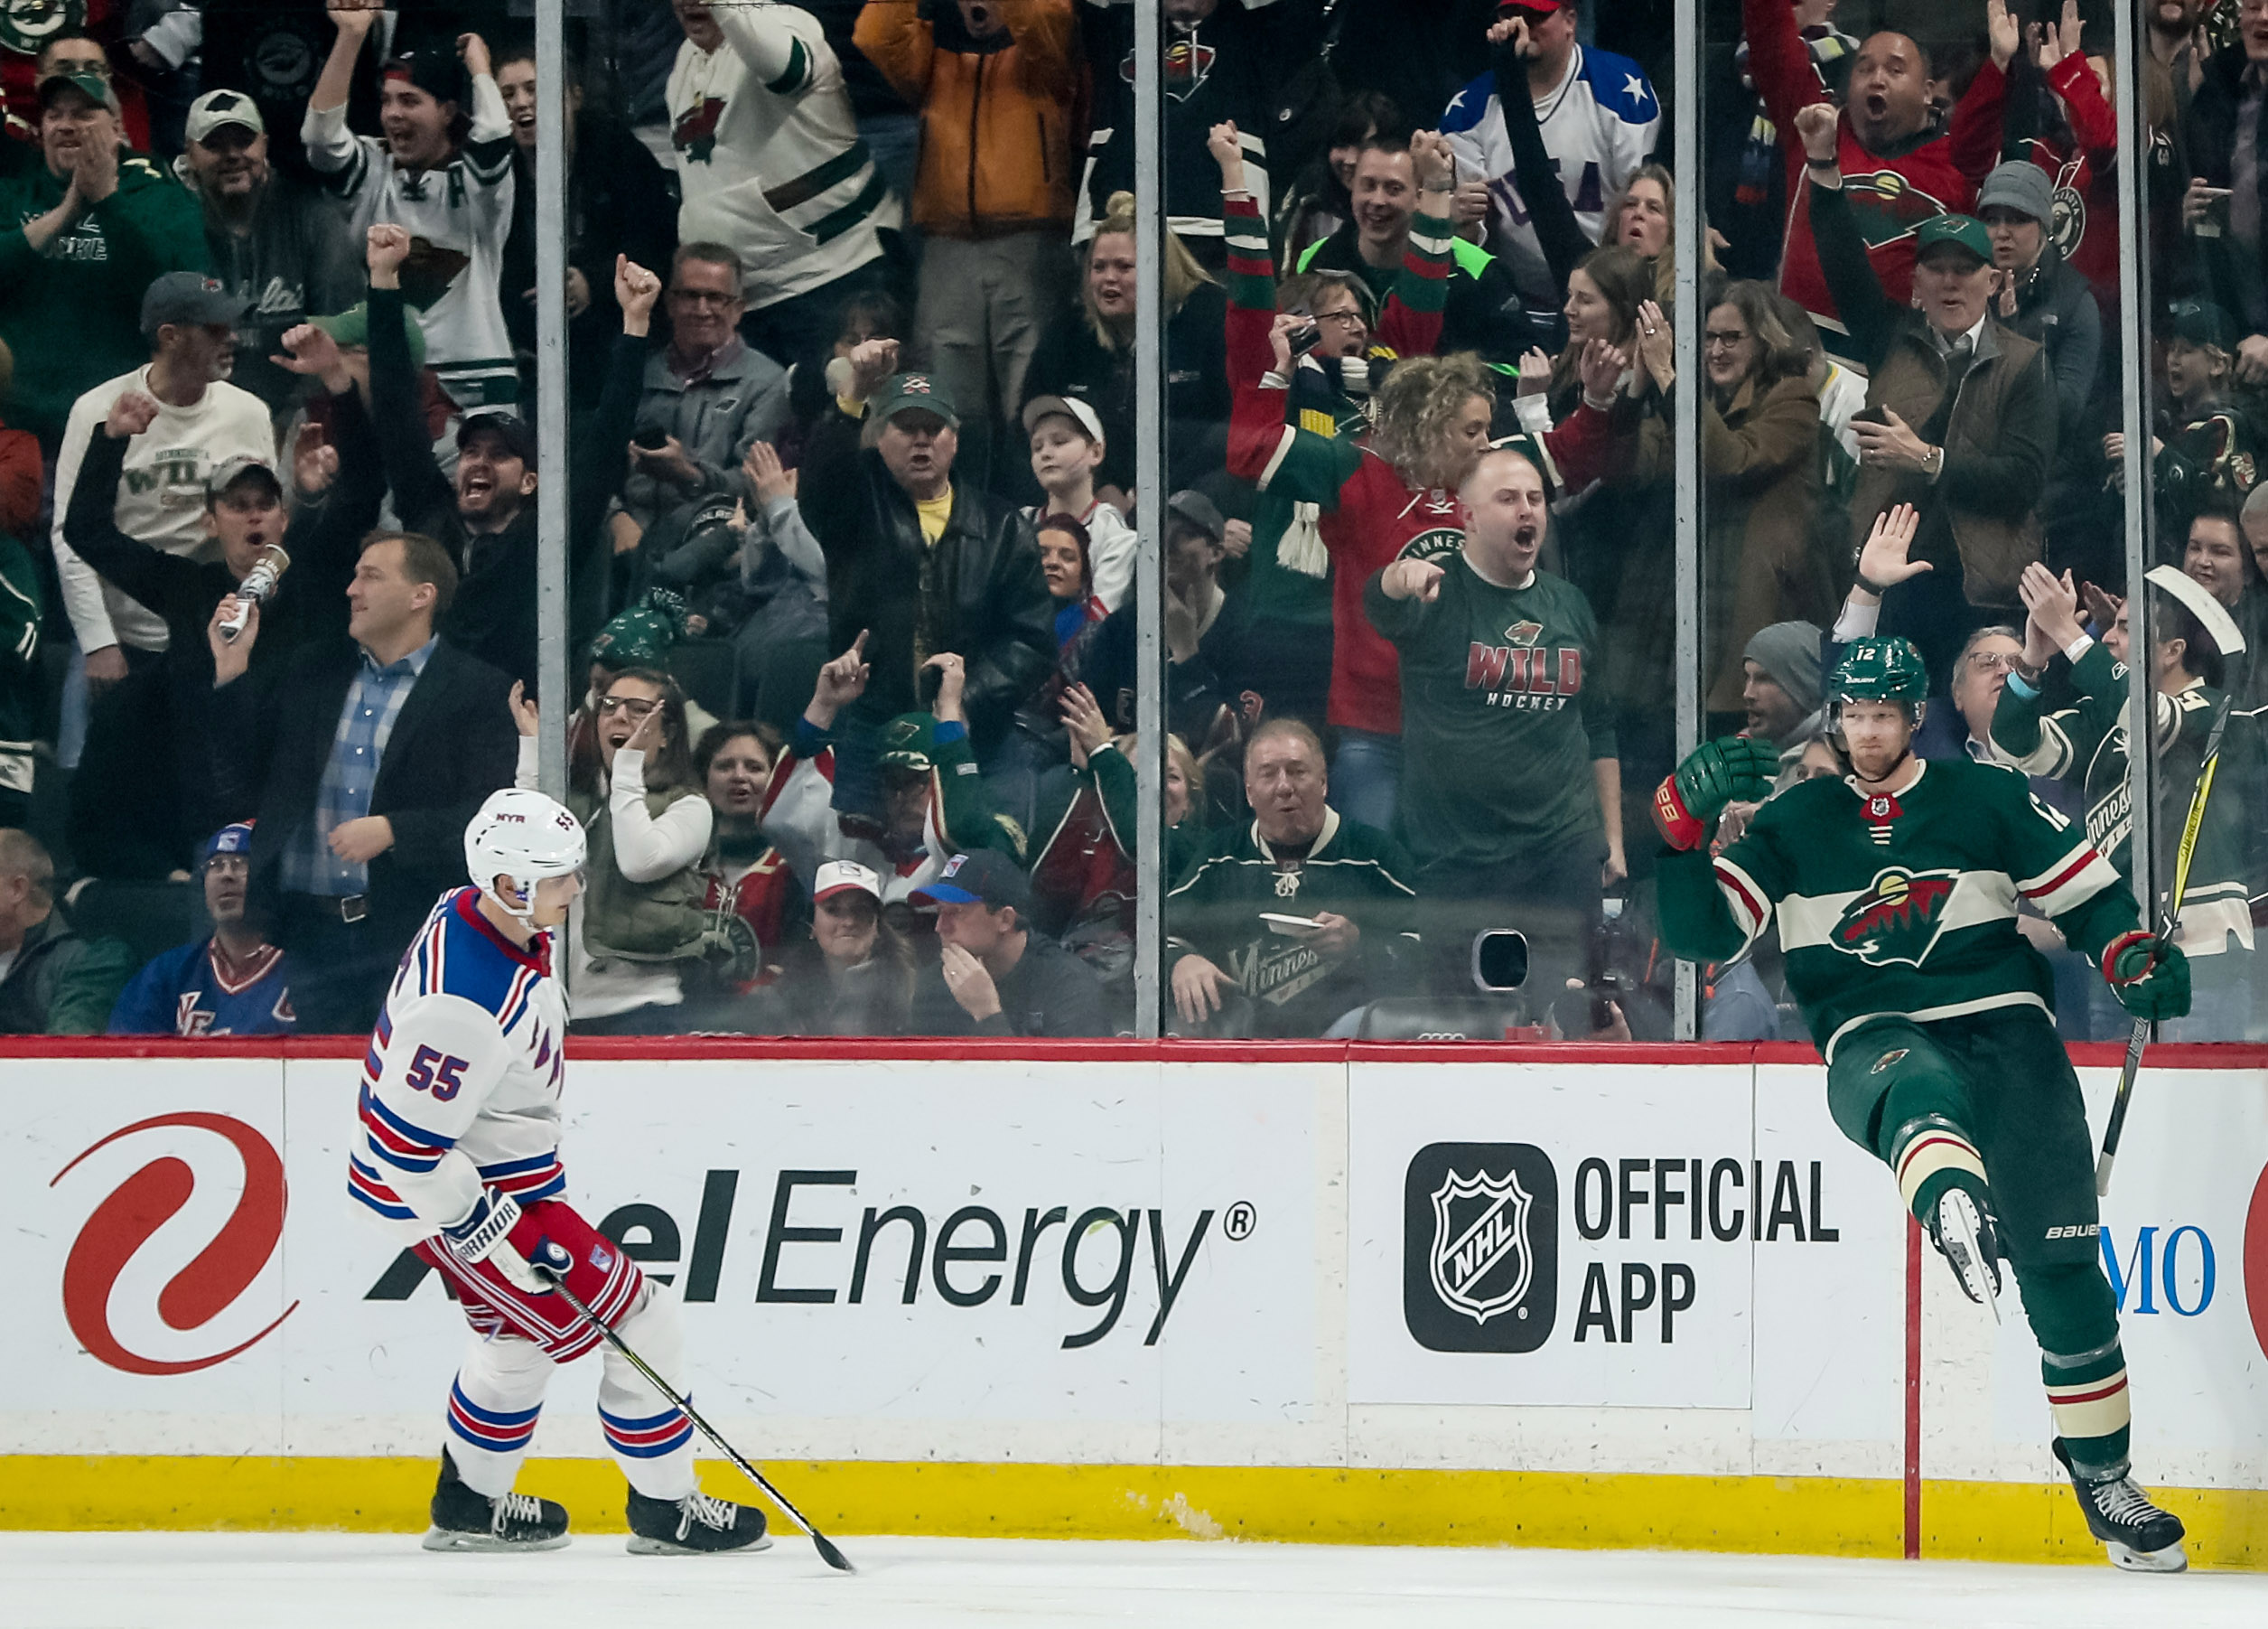 Wild's offense wakes up in 4-1 against Rangers